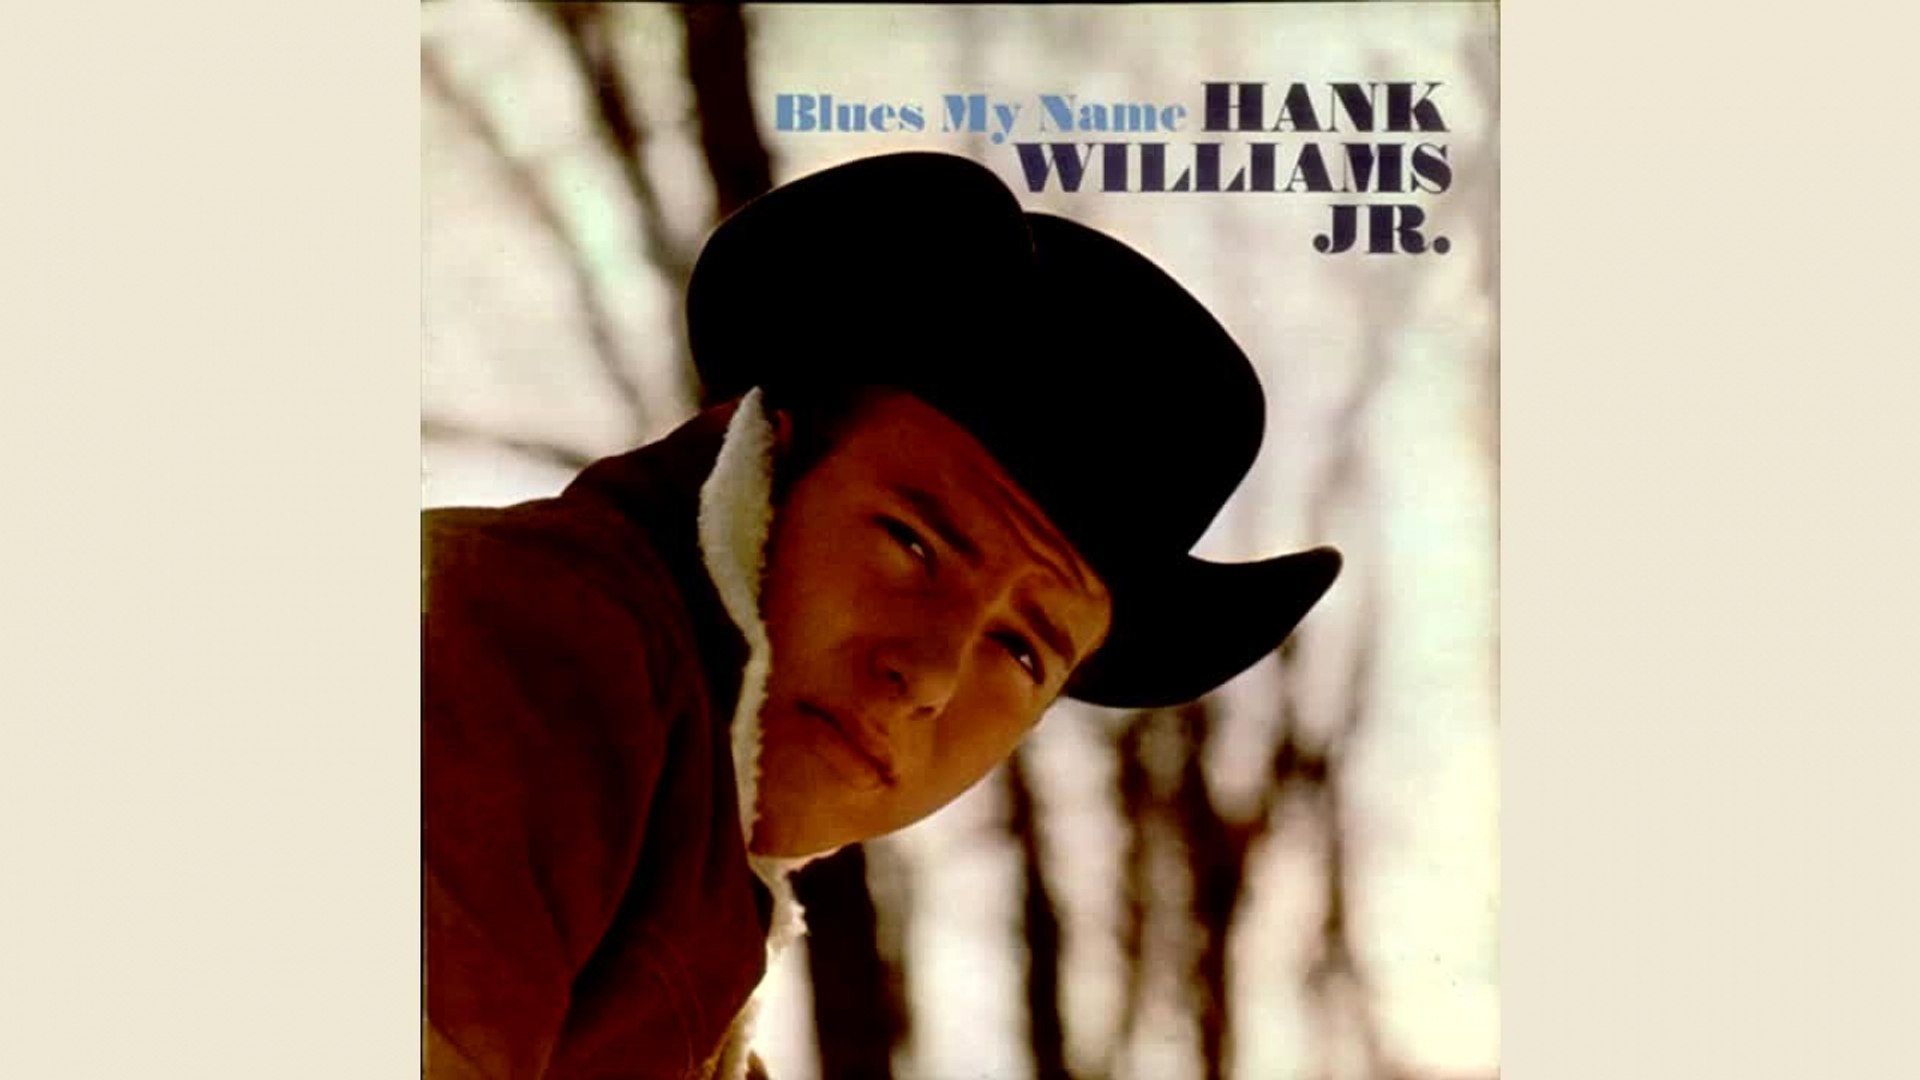 Hank Williams Jr. - Blue s My Name and many others Album - Vintage Music Songs